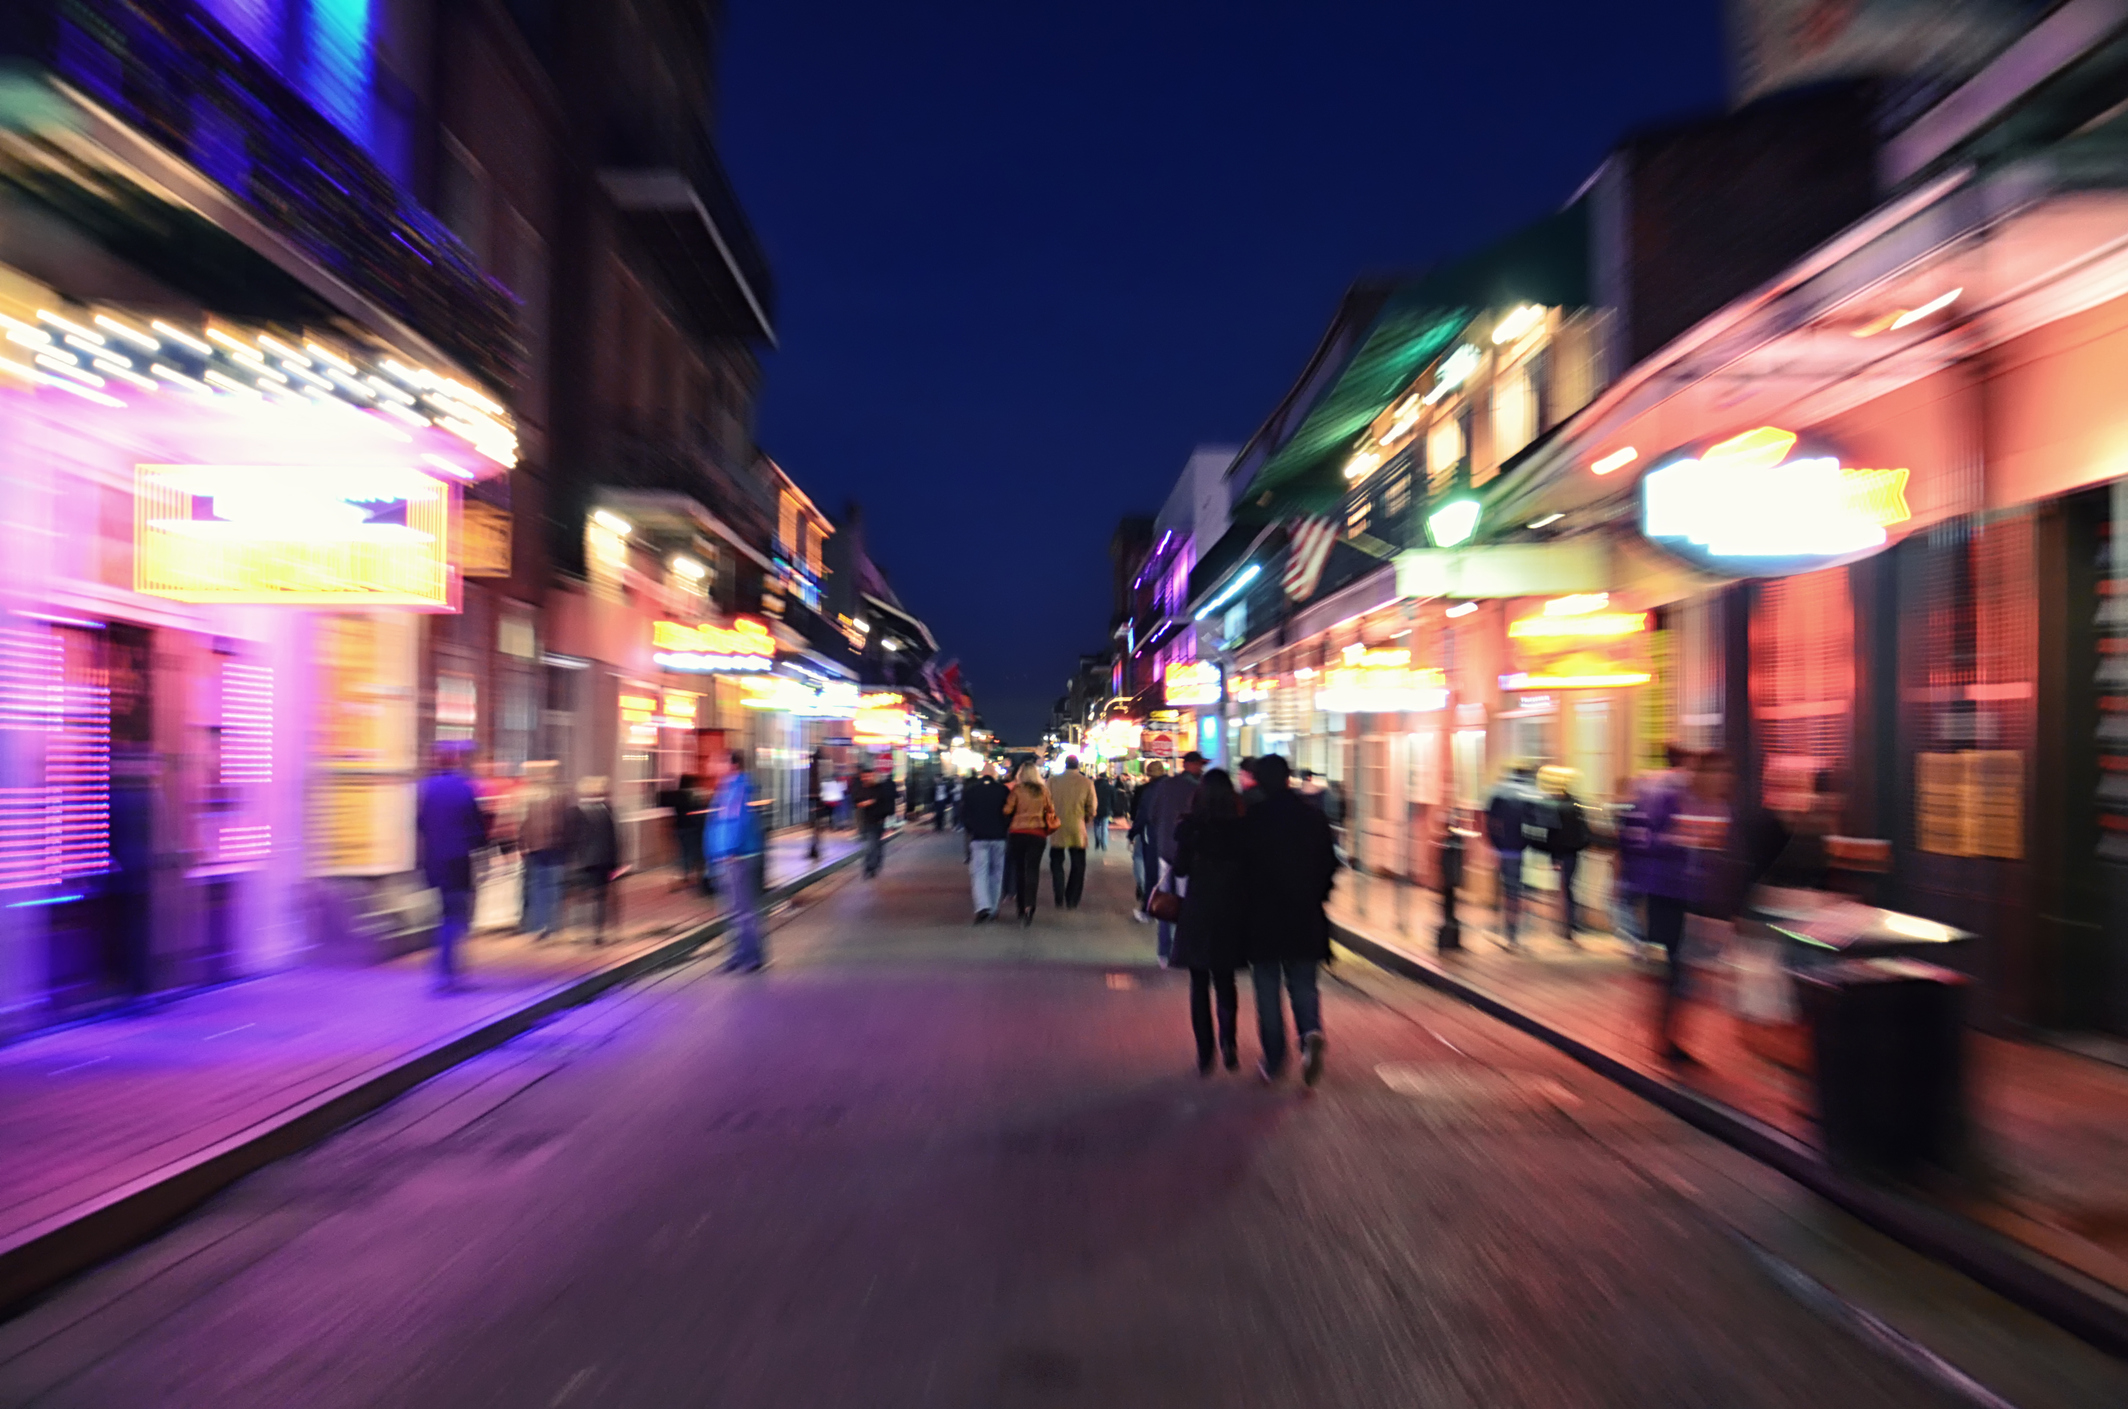 """""""Moving sense on Bourbon Street, a feeling of the nightlife in New Orleans famous French Quarter."""""""